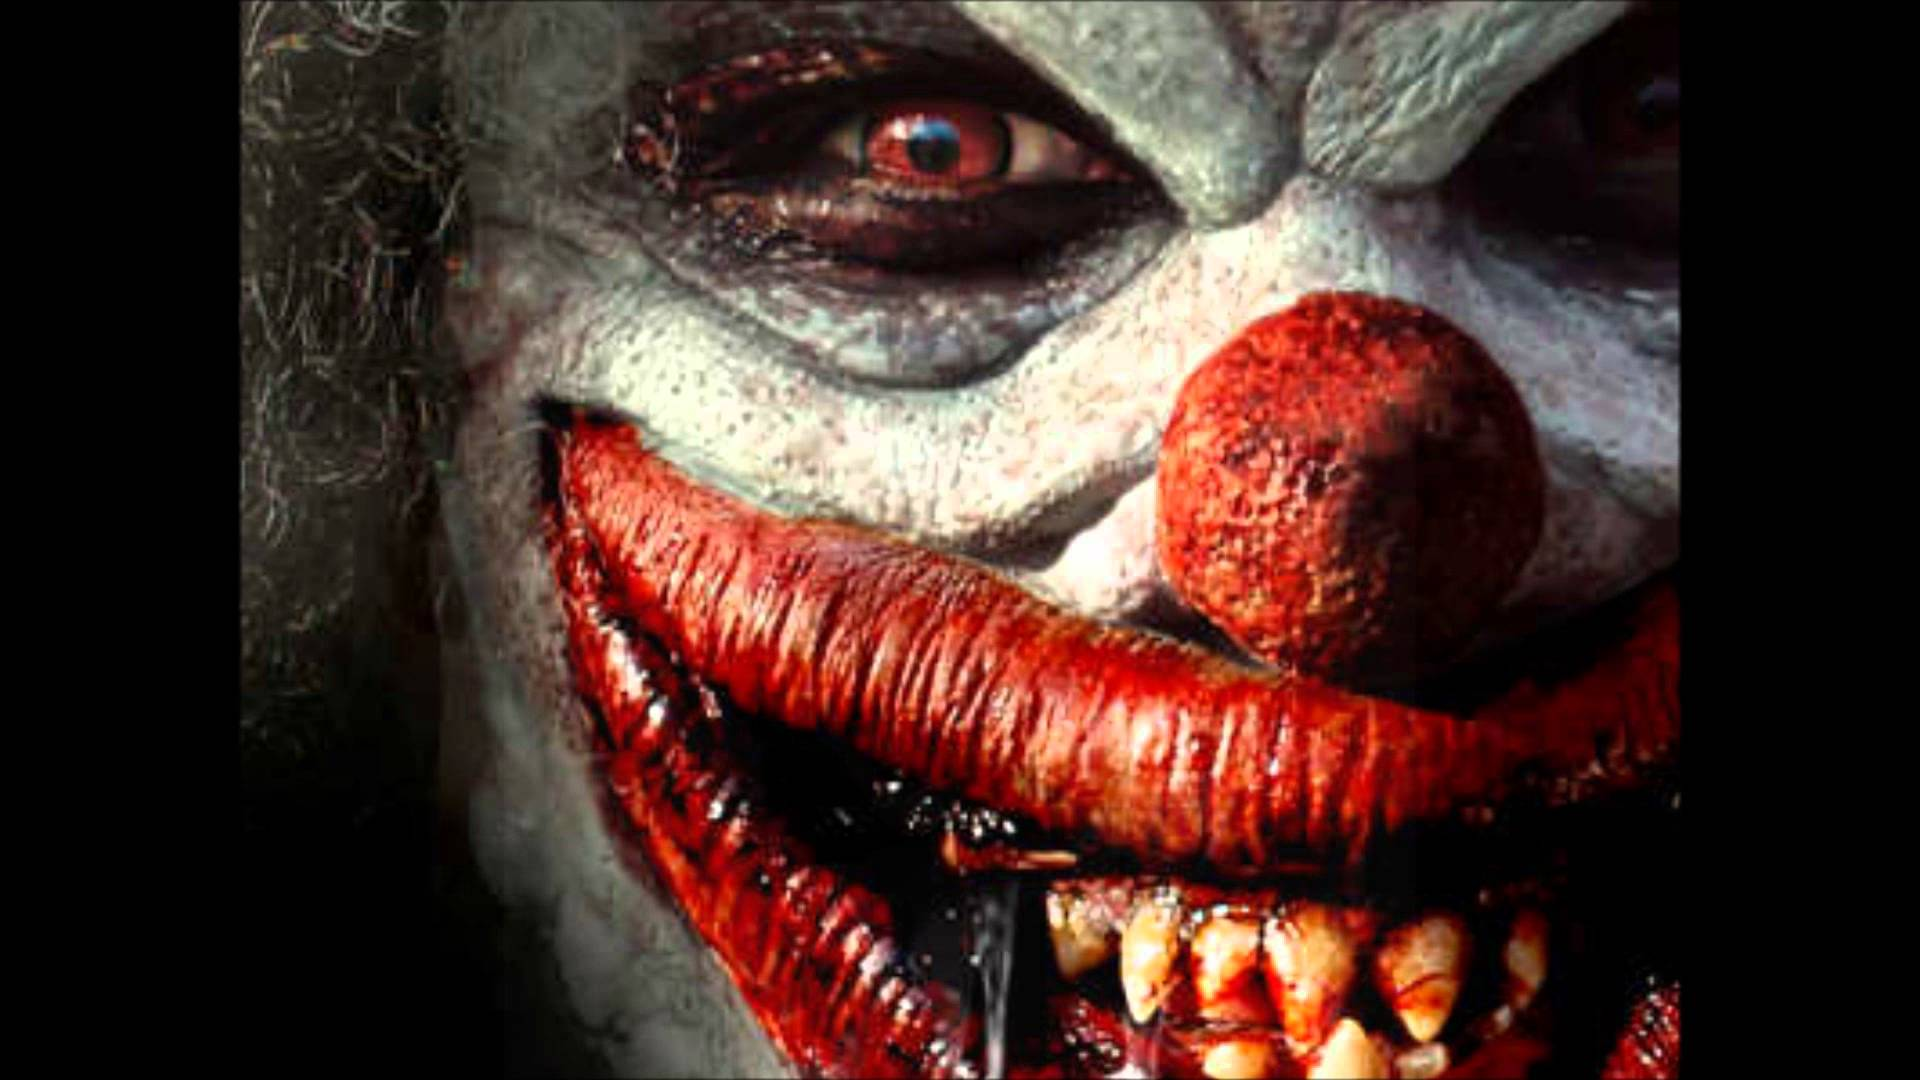 Evil Clown Wallpaper Hd Evil clown wal 1920x1080